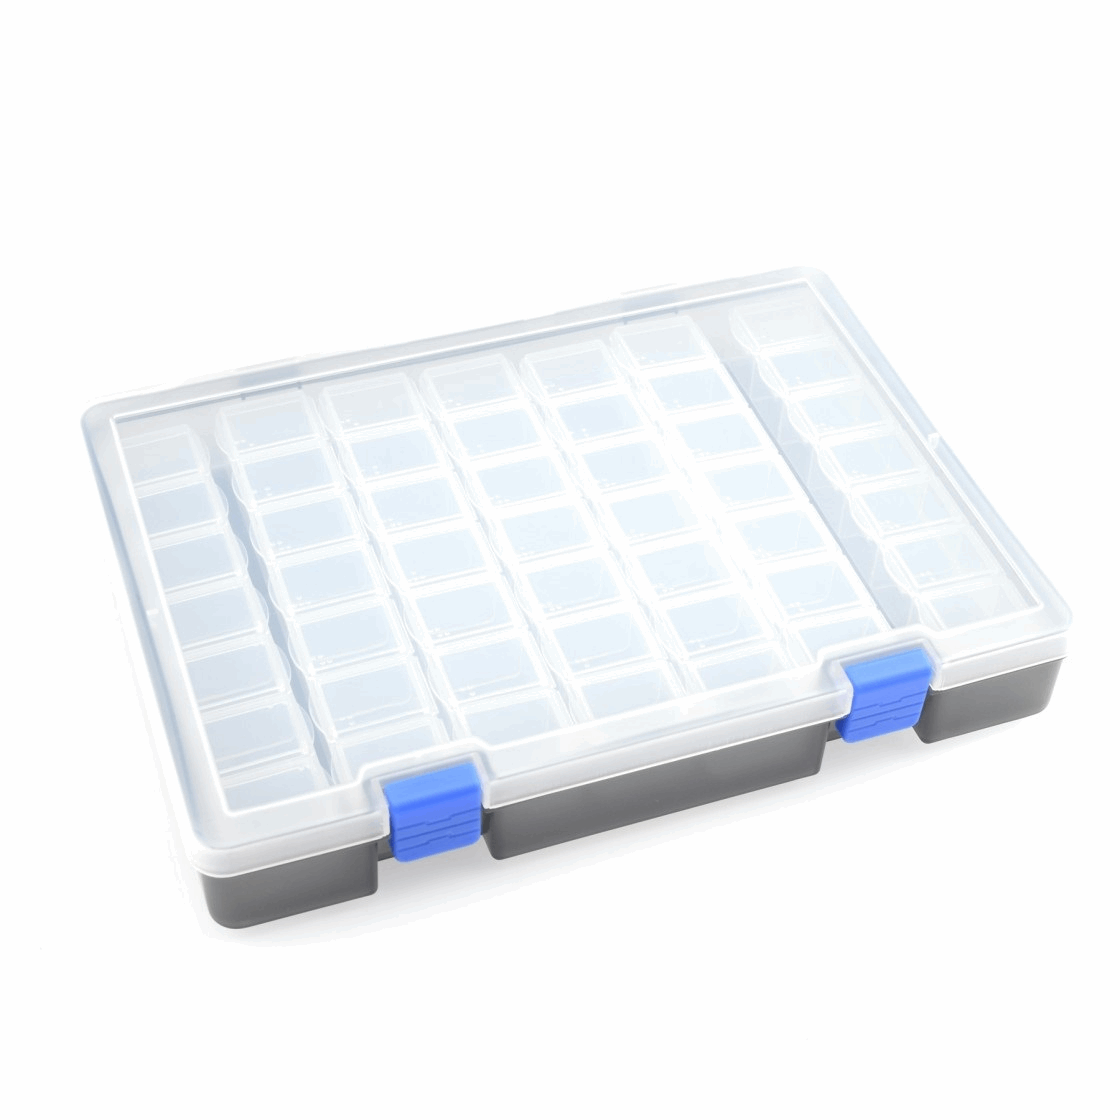 Koswork 7x7 Parts Box 245x175x38mm (49 compartments 7 each row)